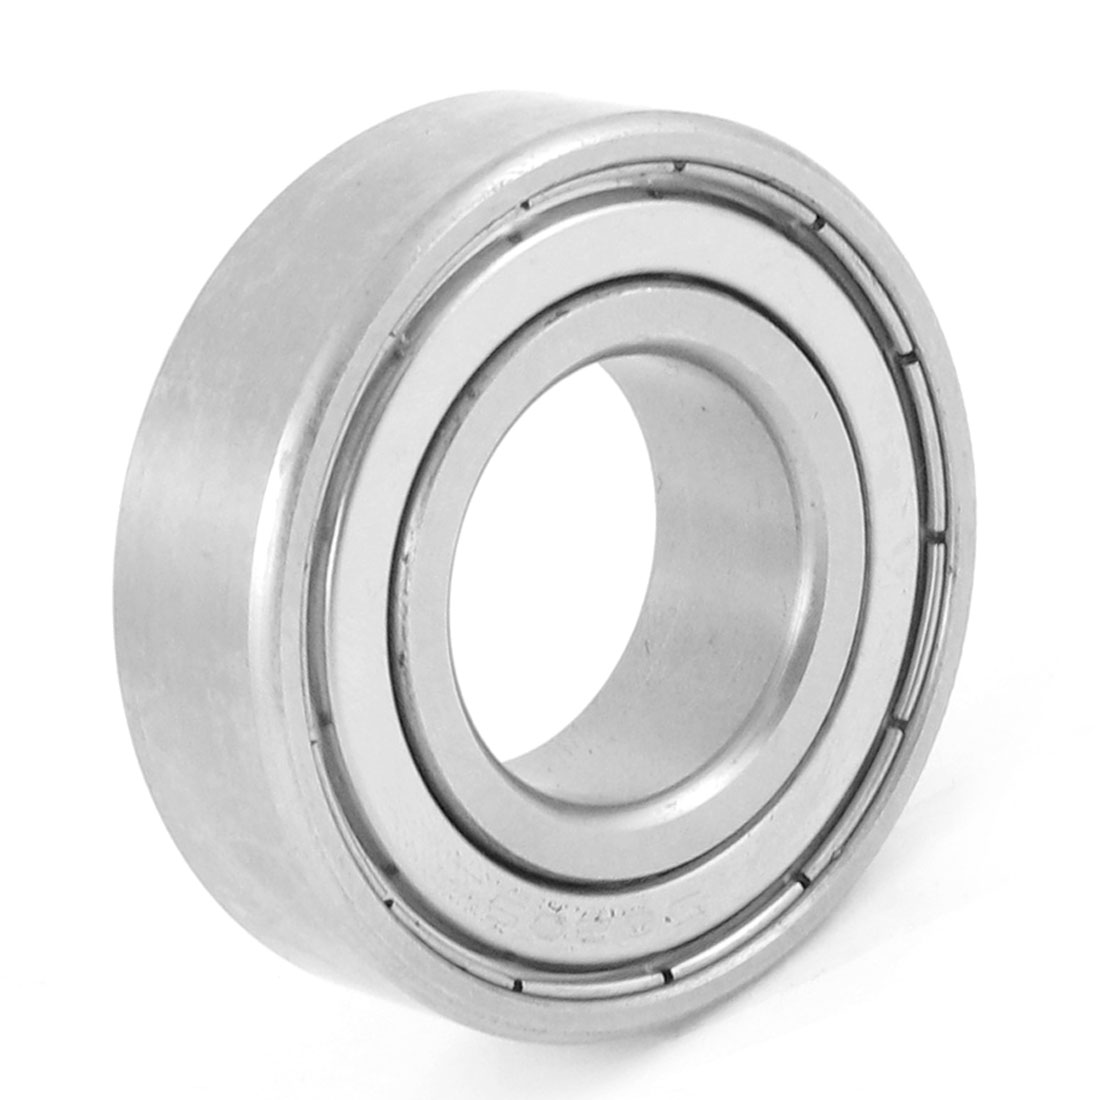 Stainless Steel 51mm x 25mm x 15mm Sealed Deep Groove Ball Bearing